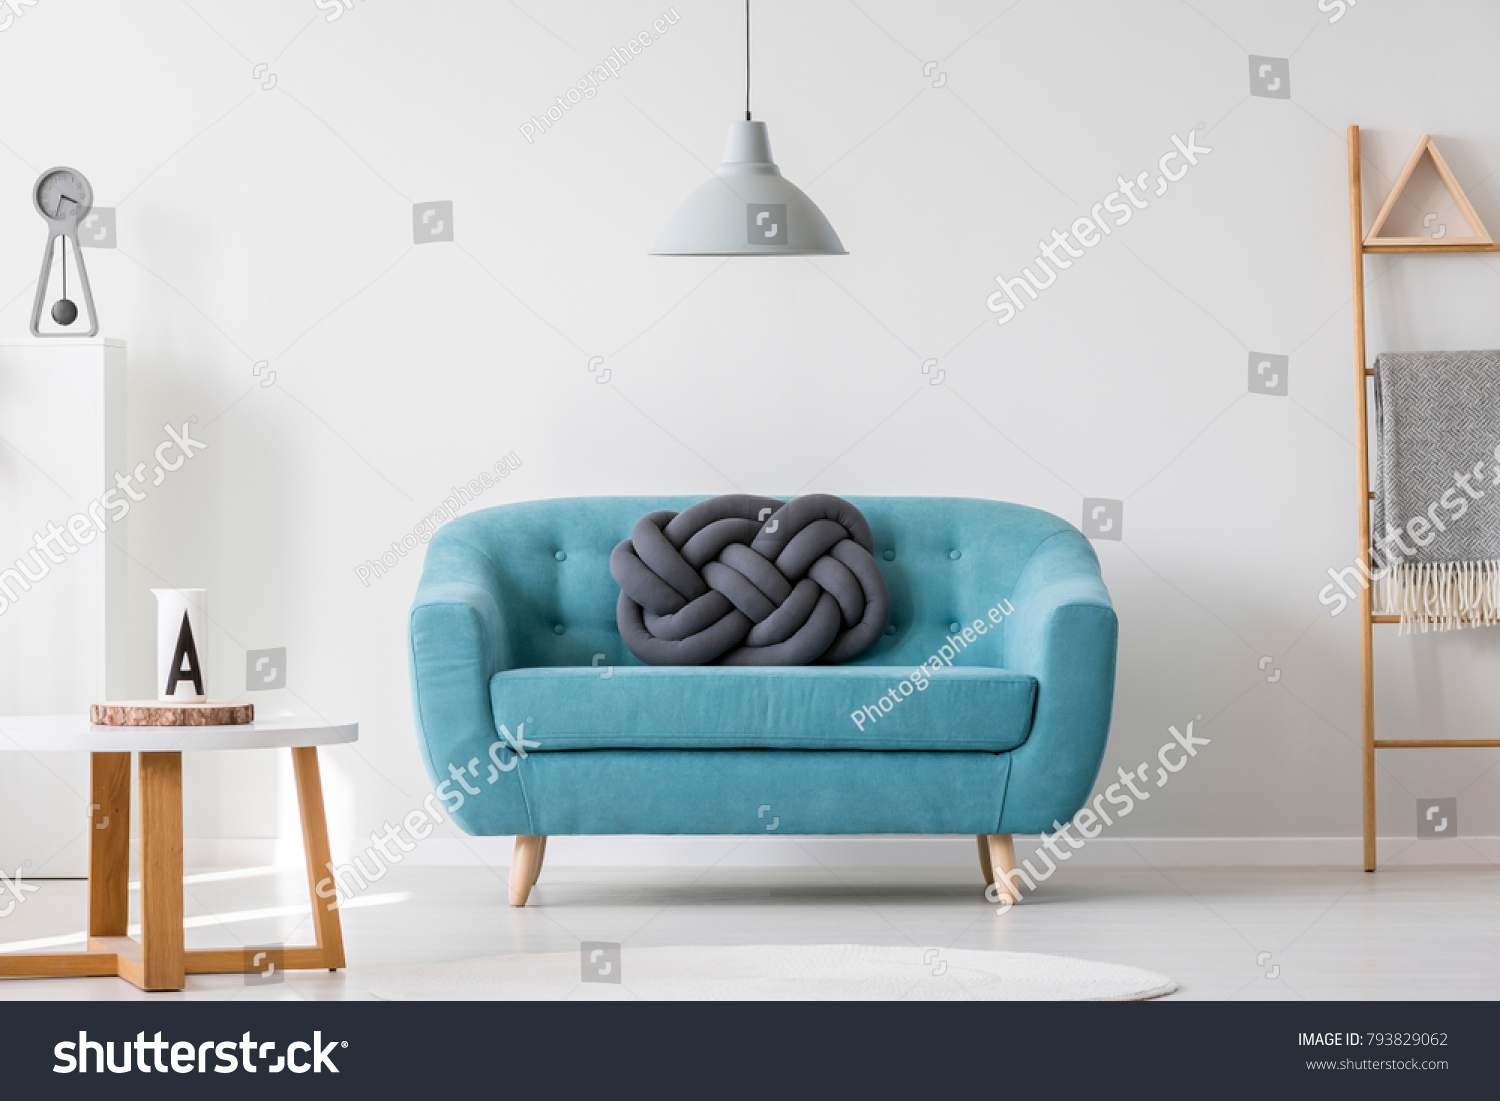 Knot Pillow On Turquoise Sofa Living Stock Photo (Download Now ...